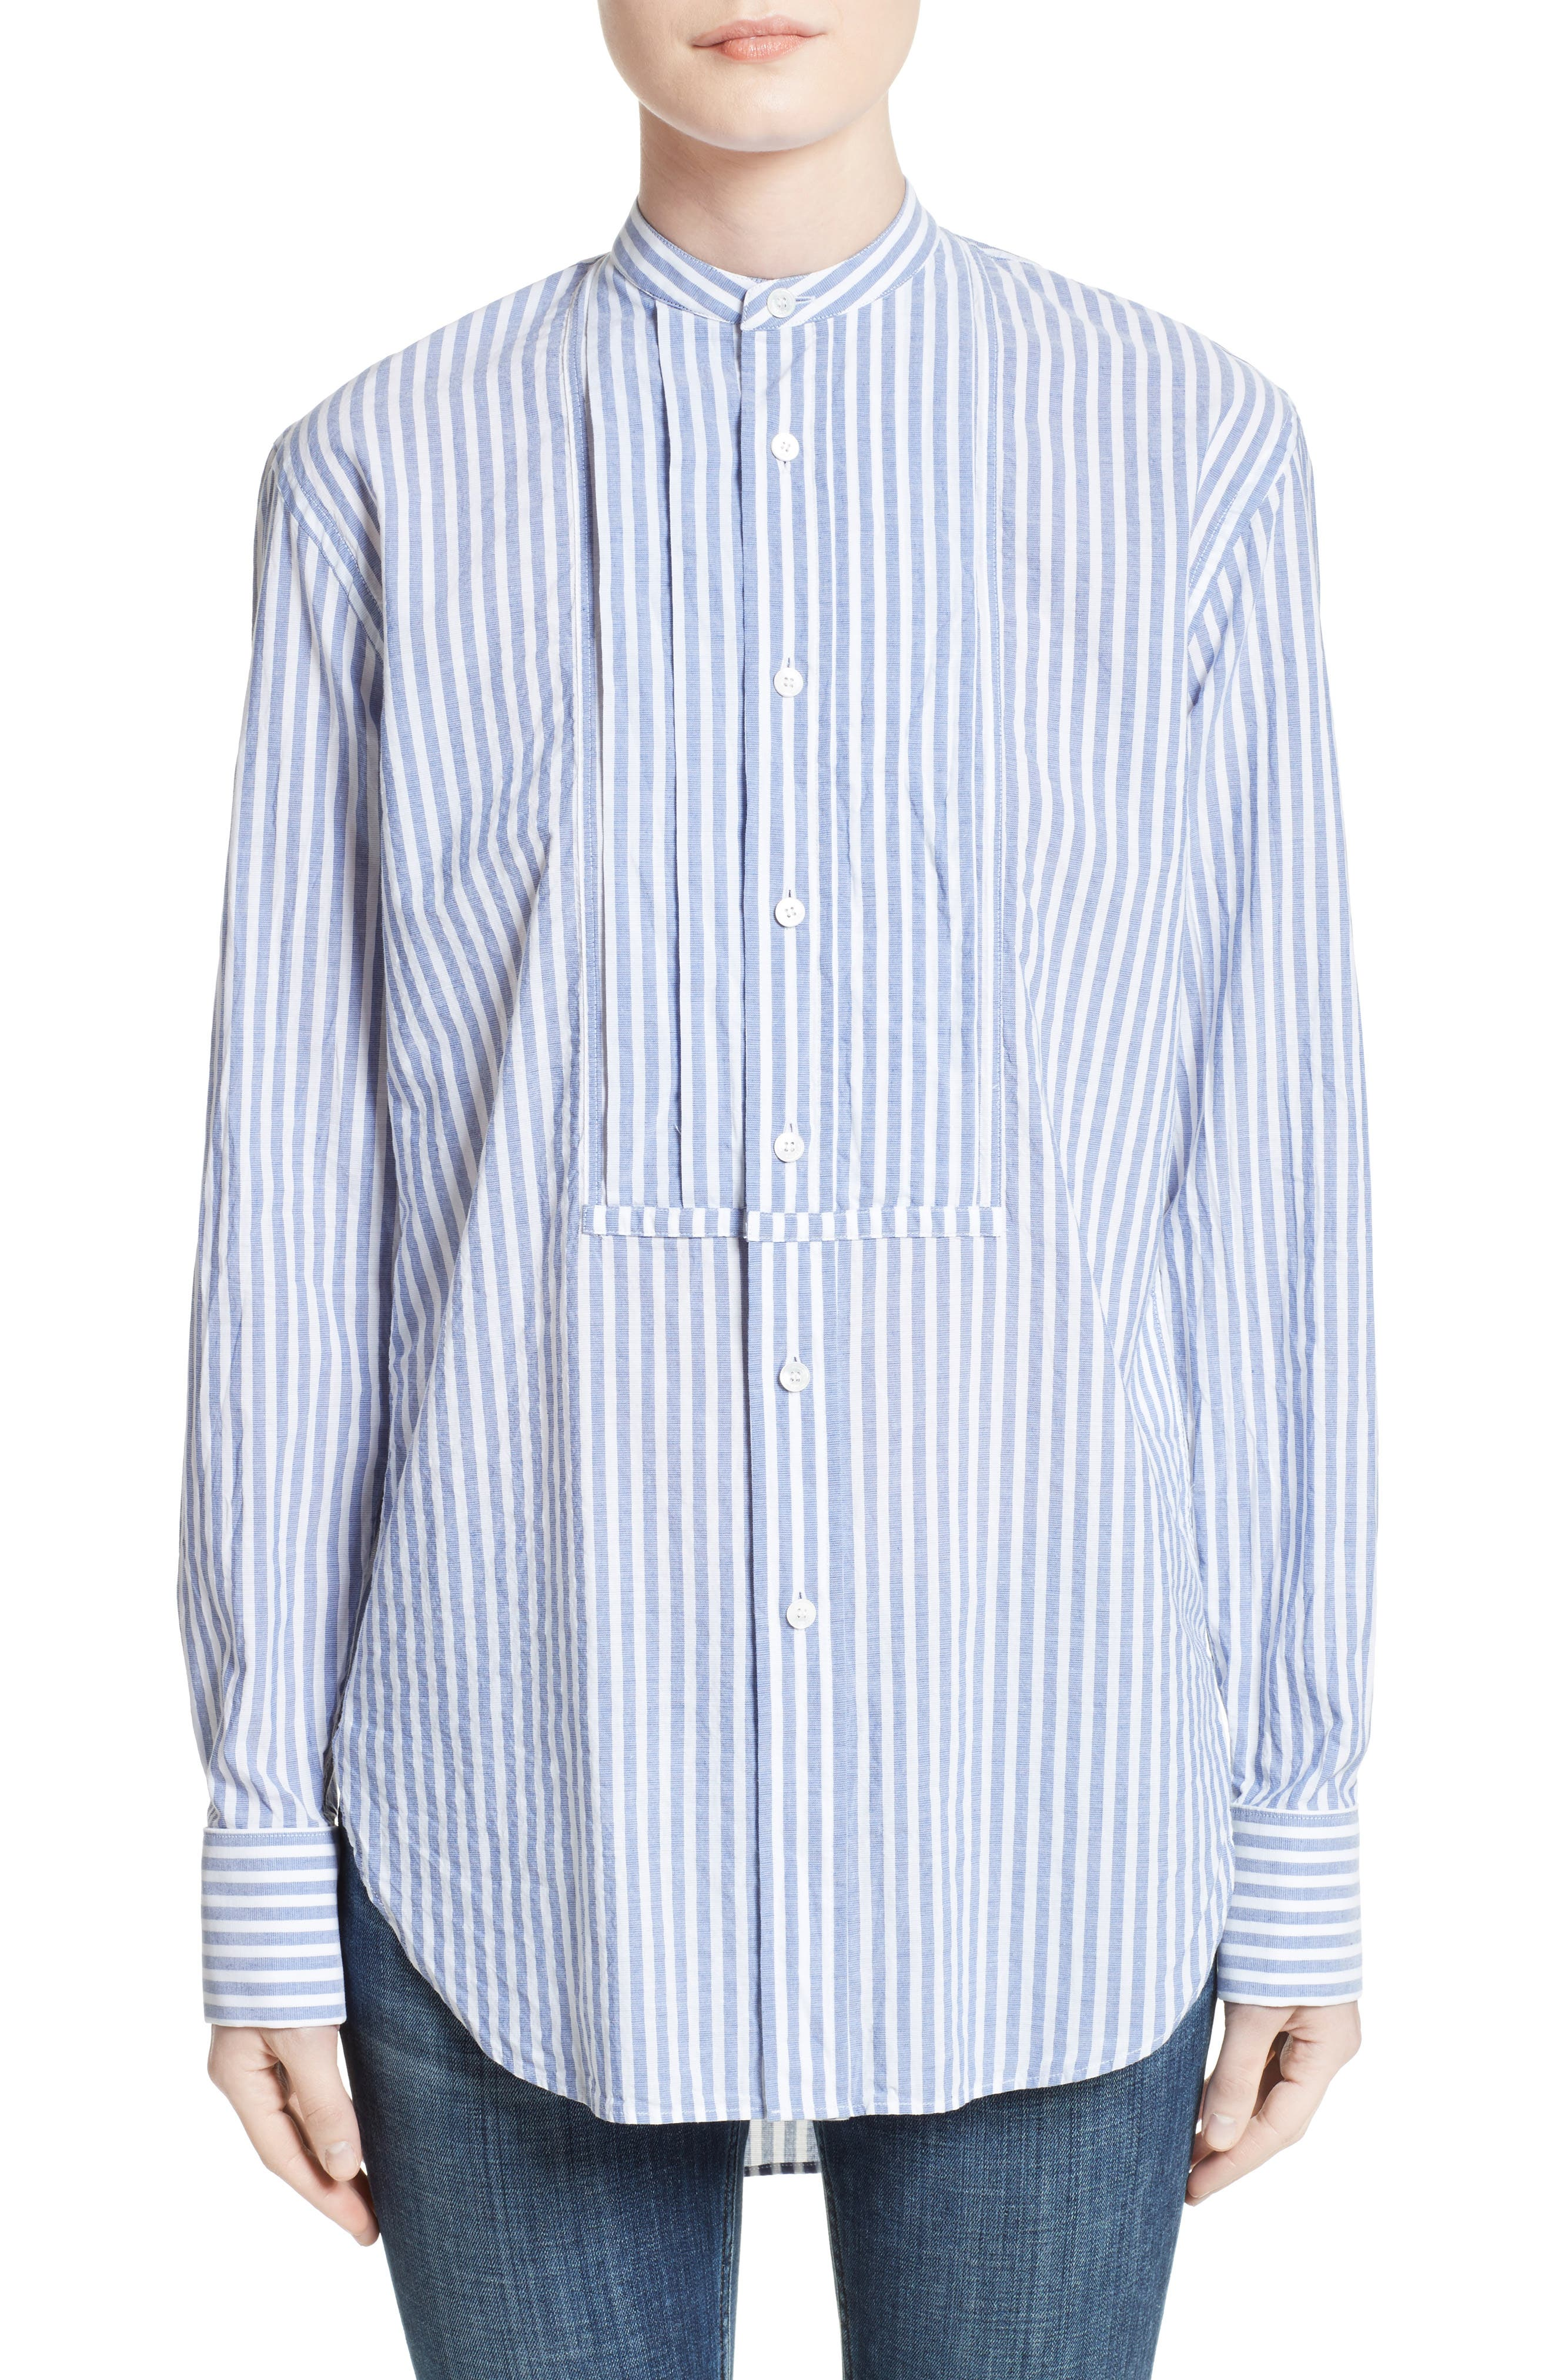 Benfleet Stripe Cotton Top,                             Main thumbnail 1, color,                             456